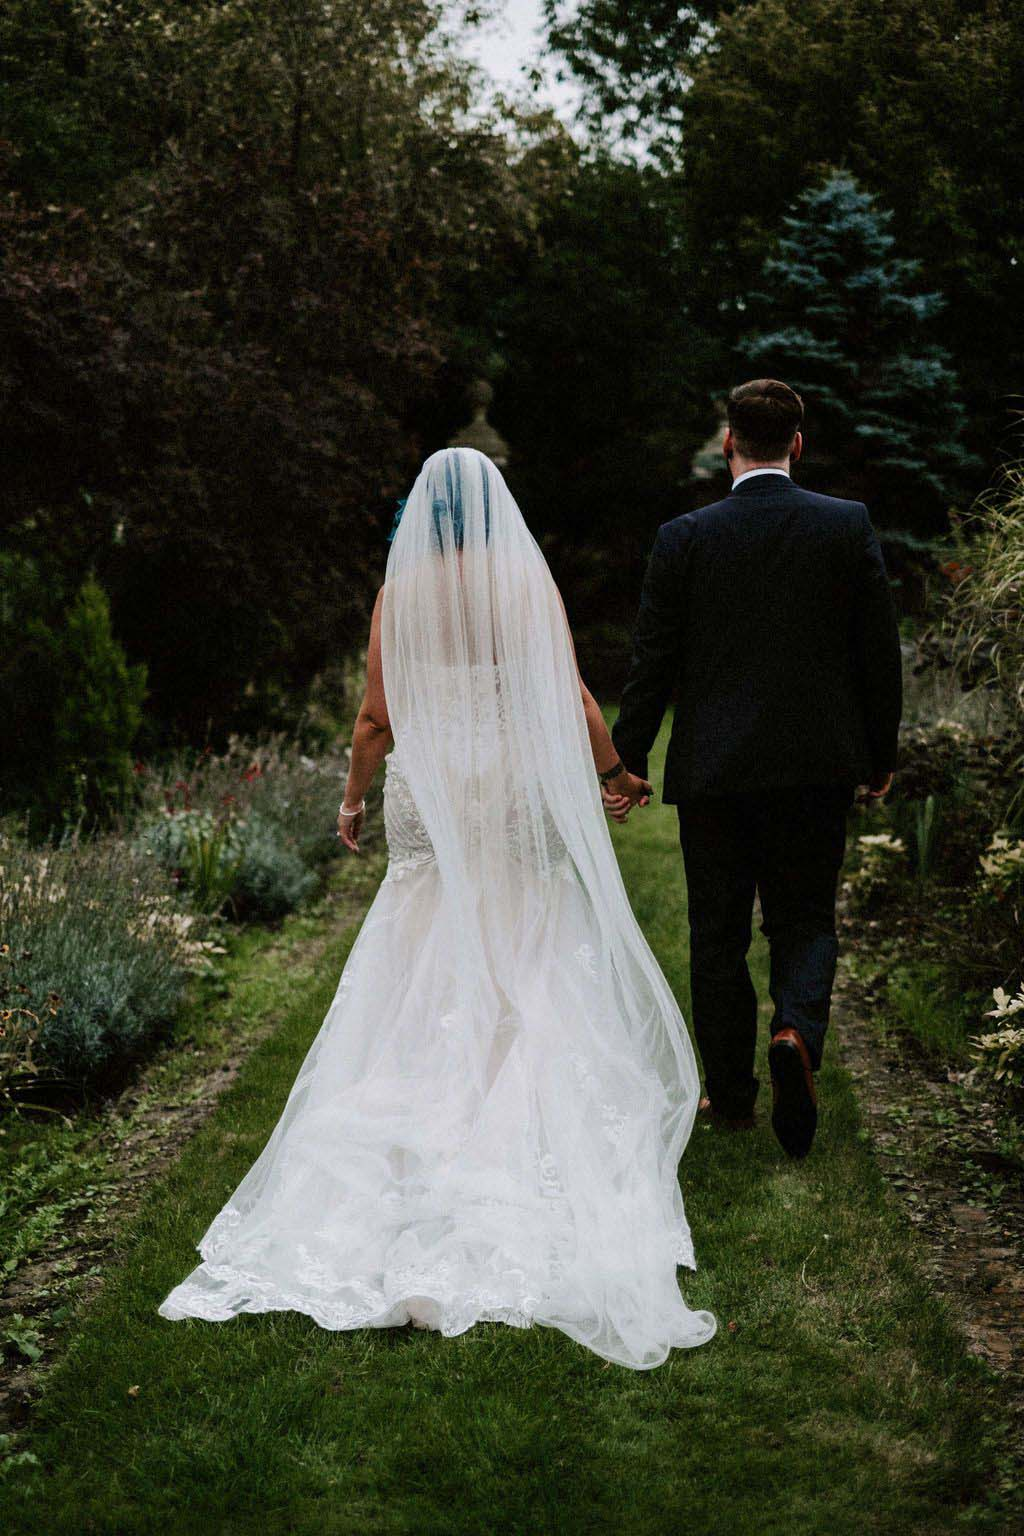 Melissa & Tom Tie The Knot At That Amazing Place Wedding Venue Wedding Dress Back